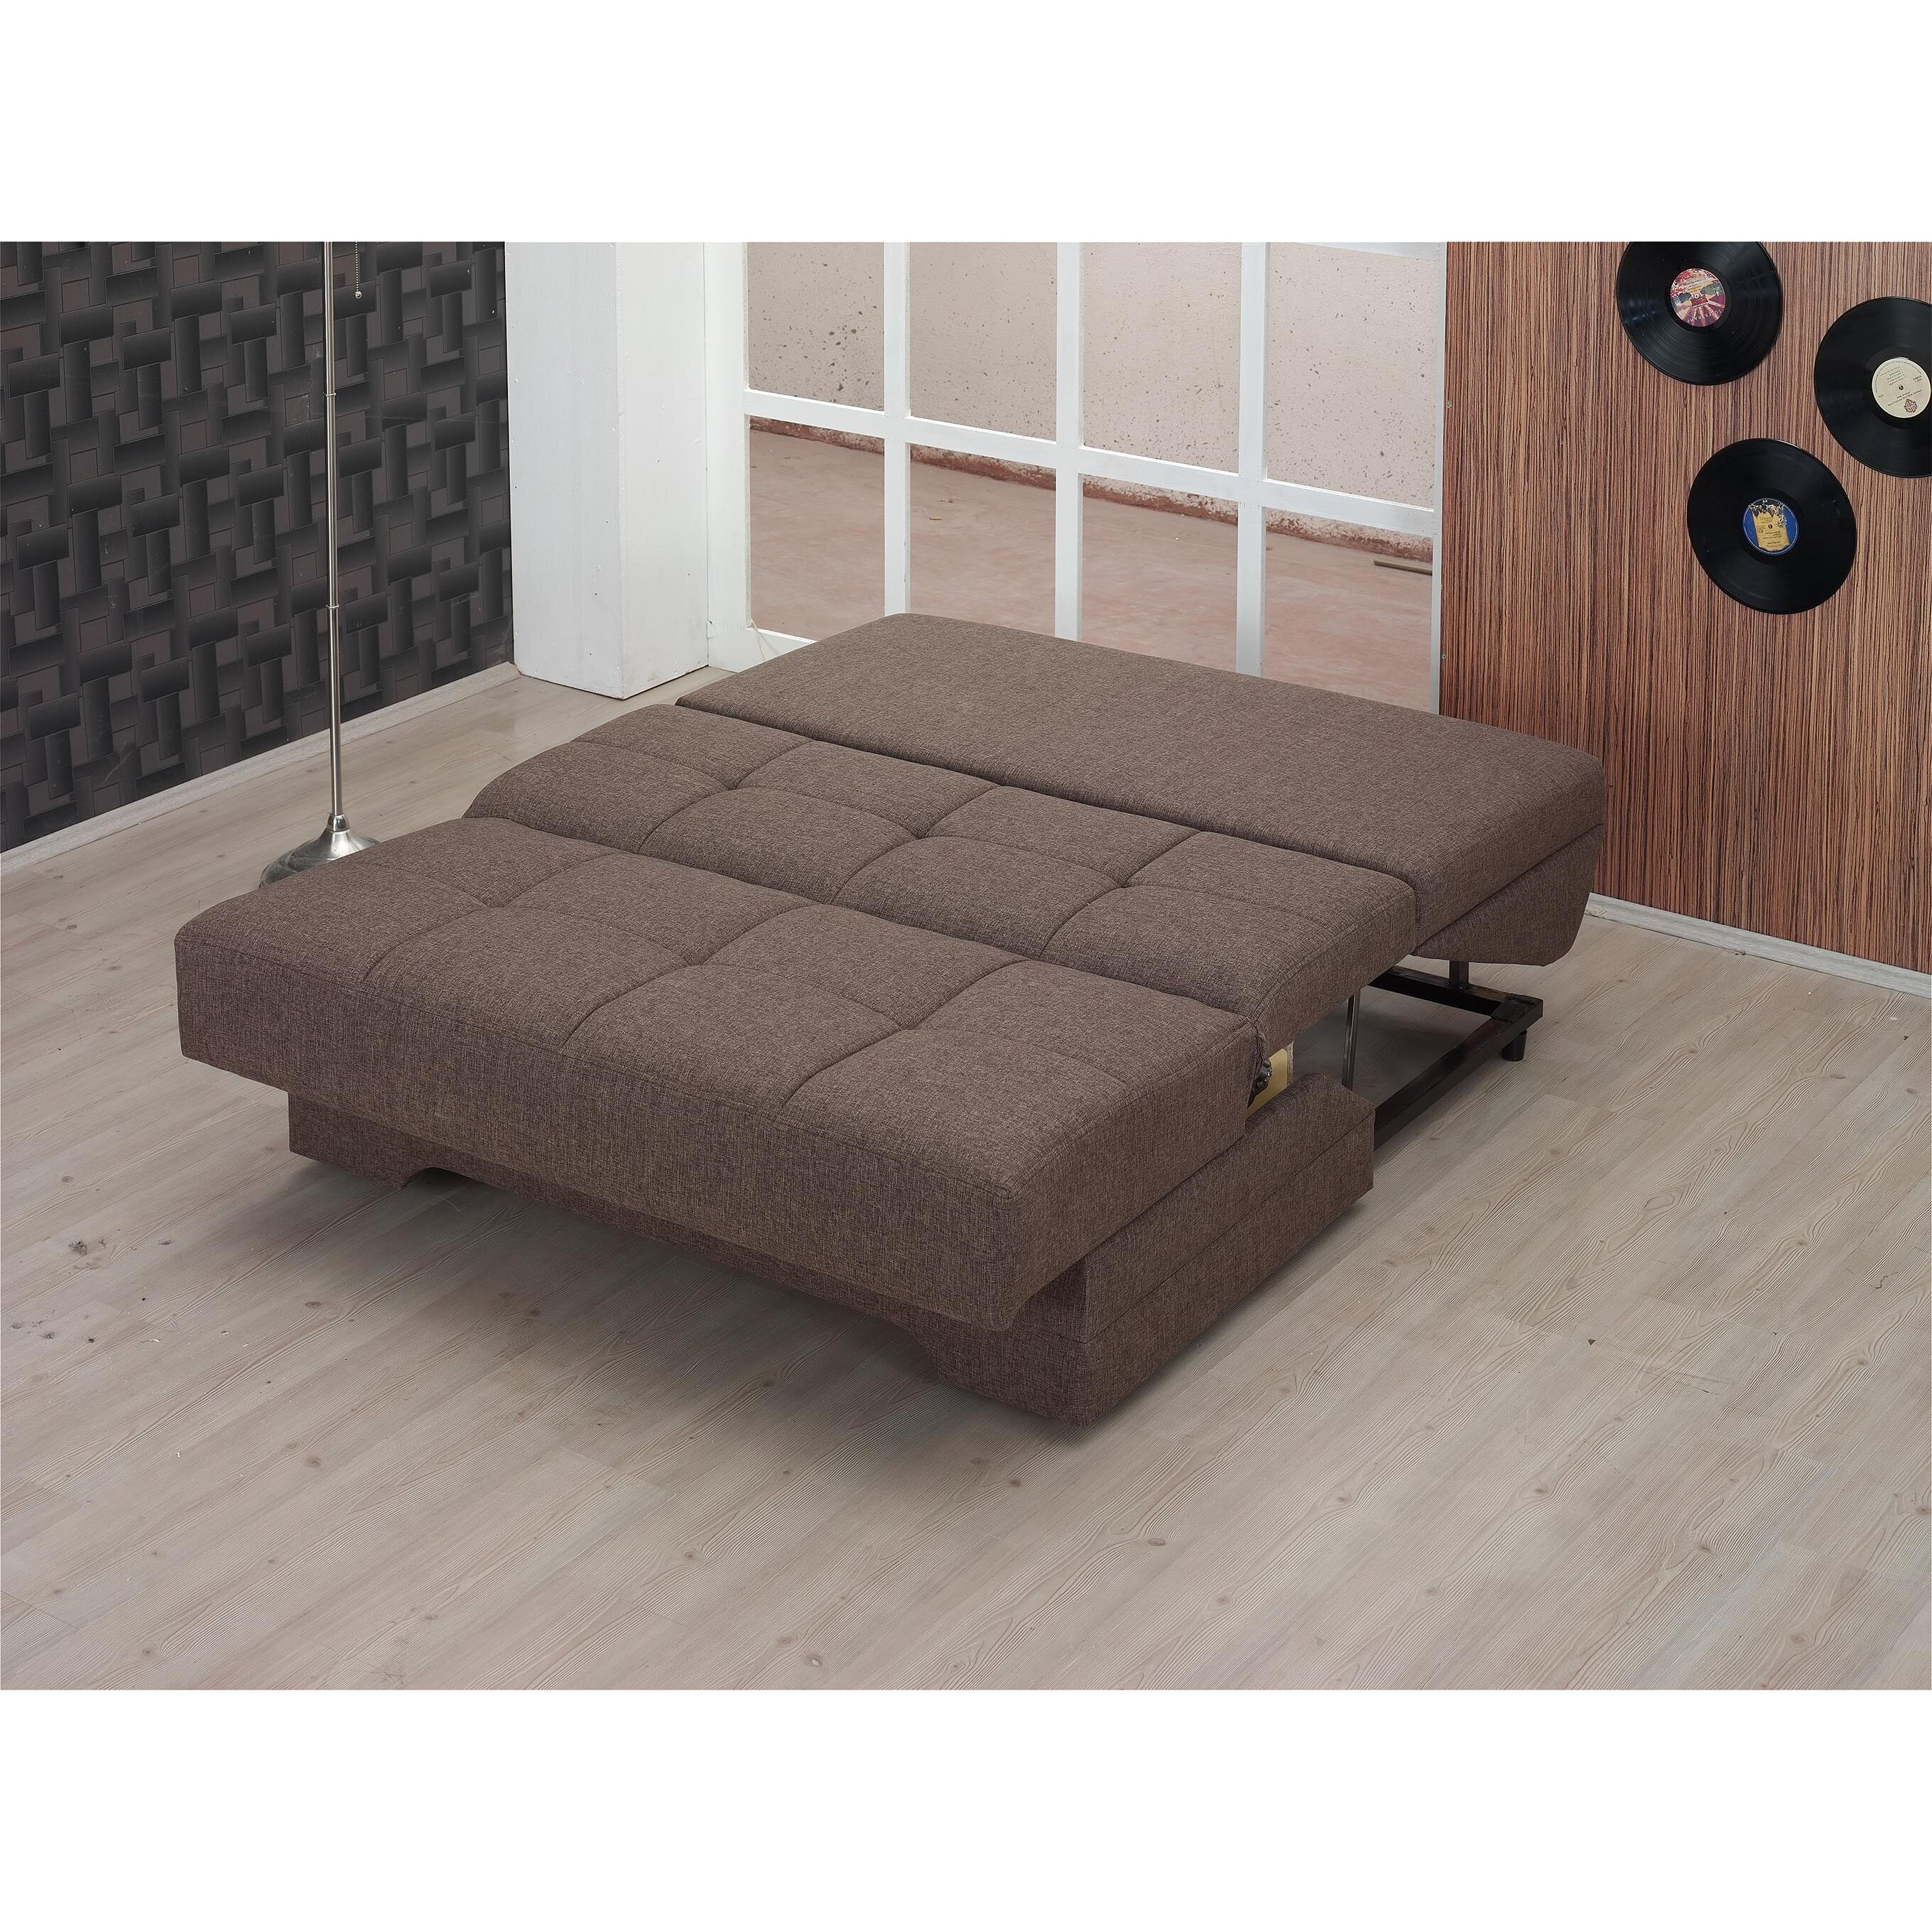 Beyan Elpaso Sleeper Sofa amp Reviews Wayfair